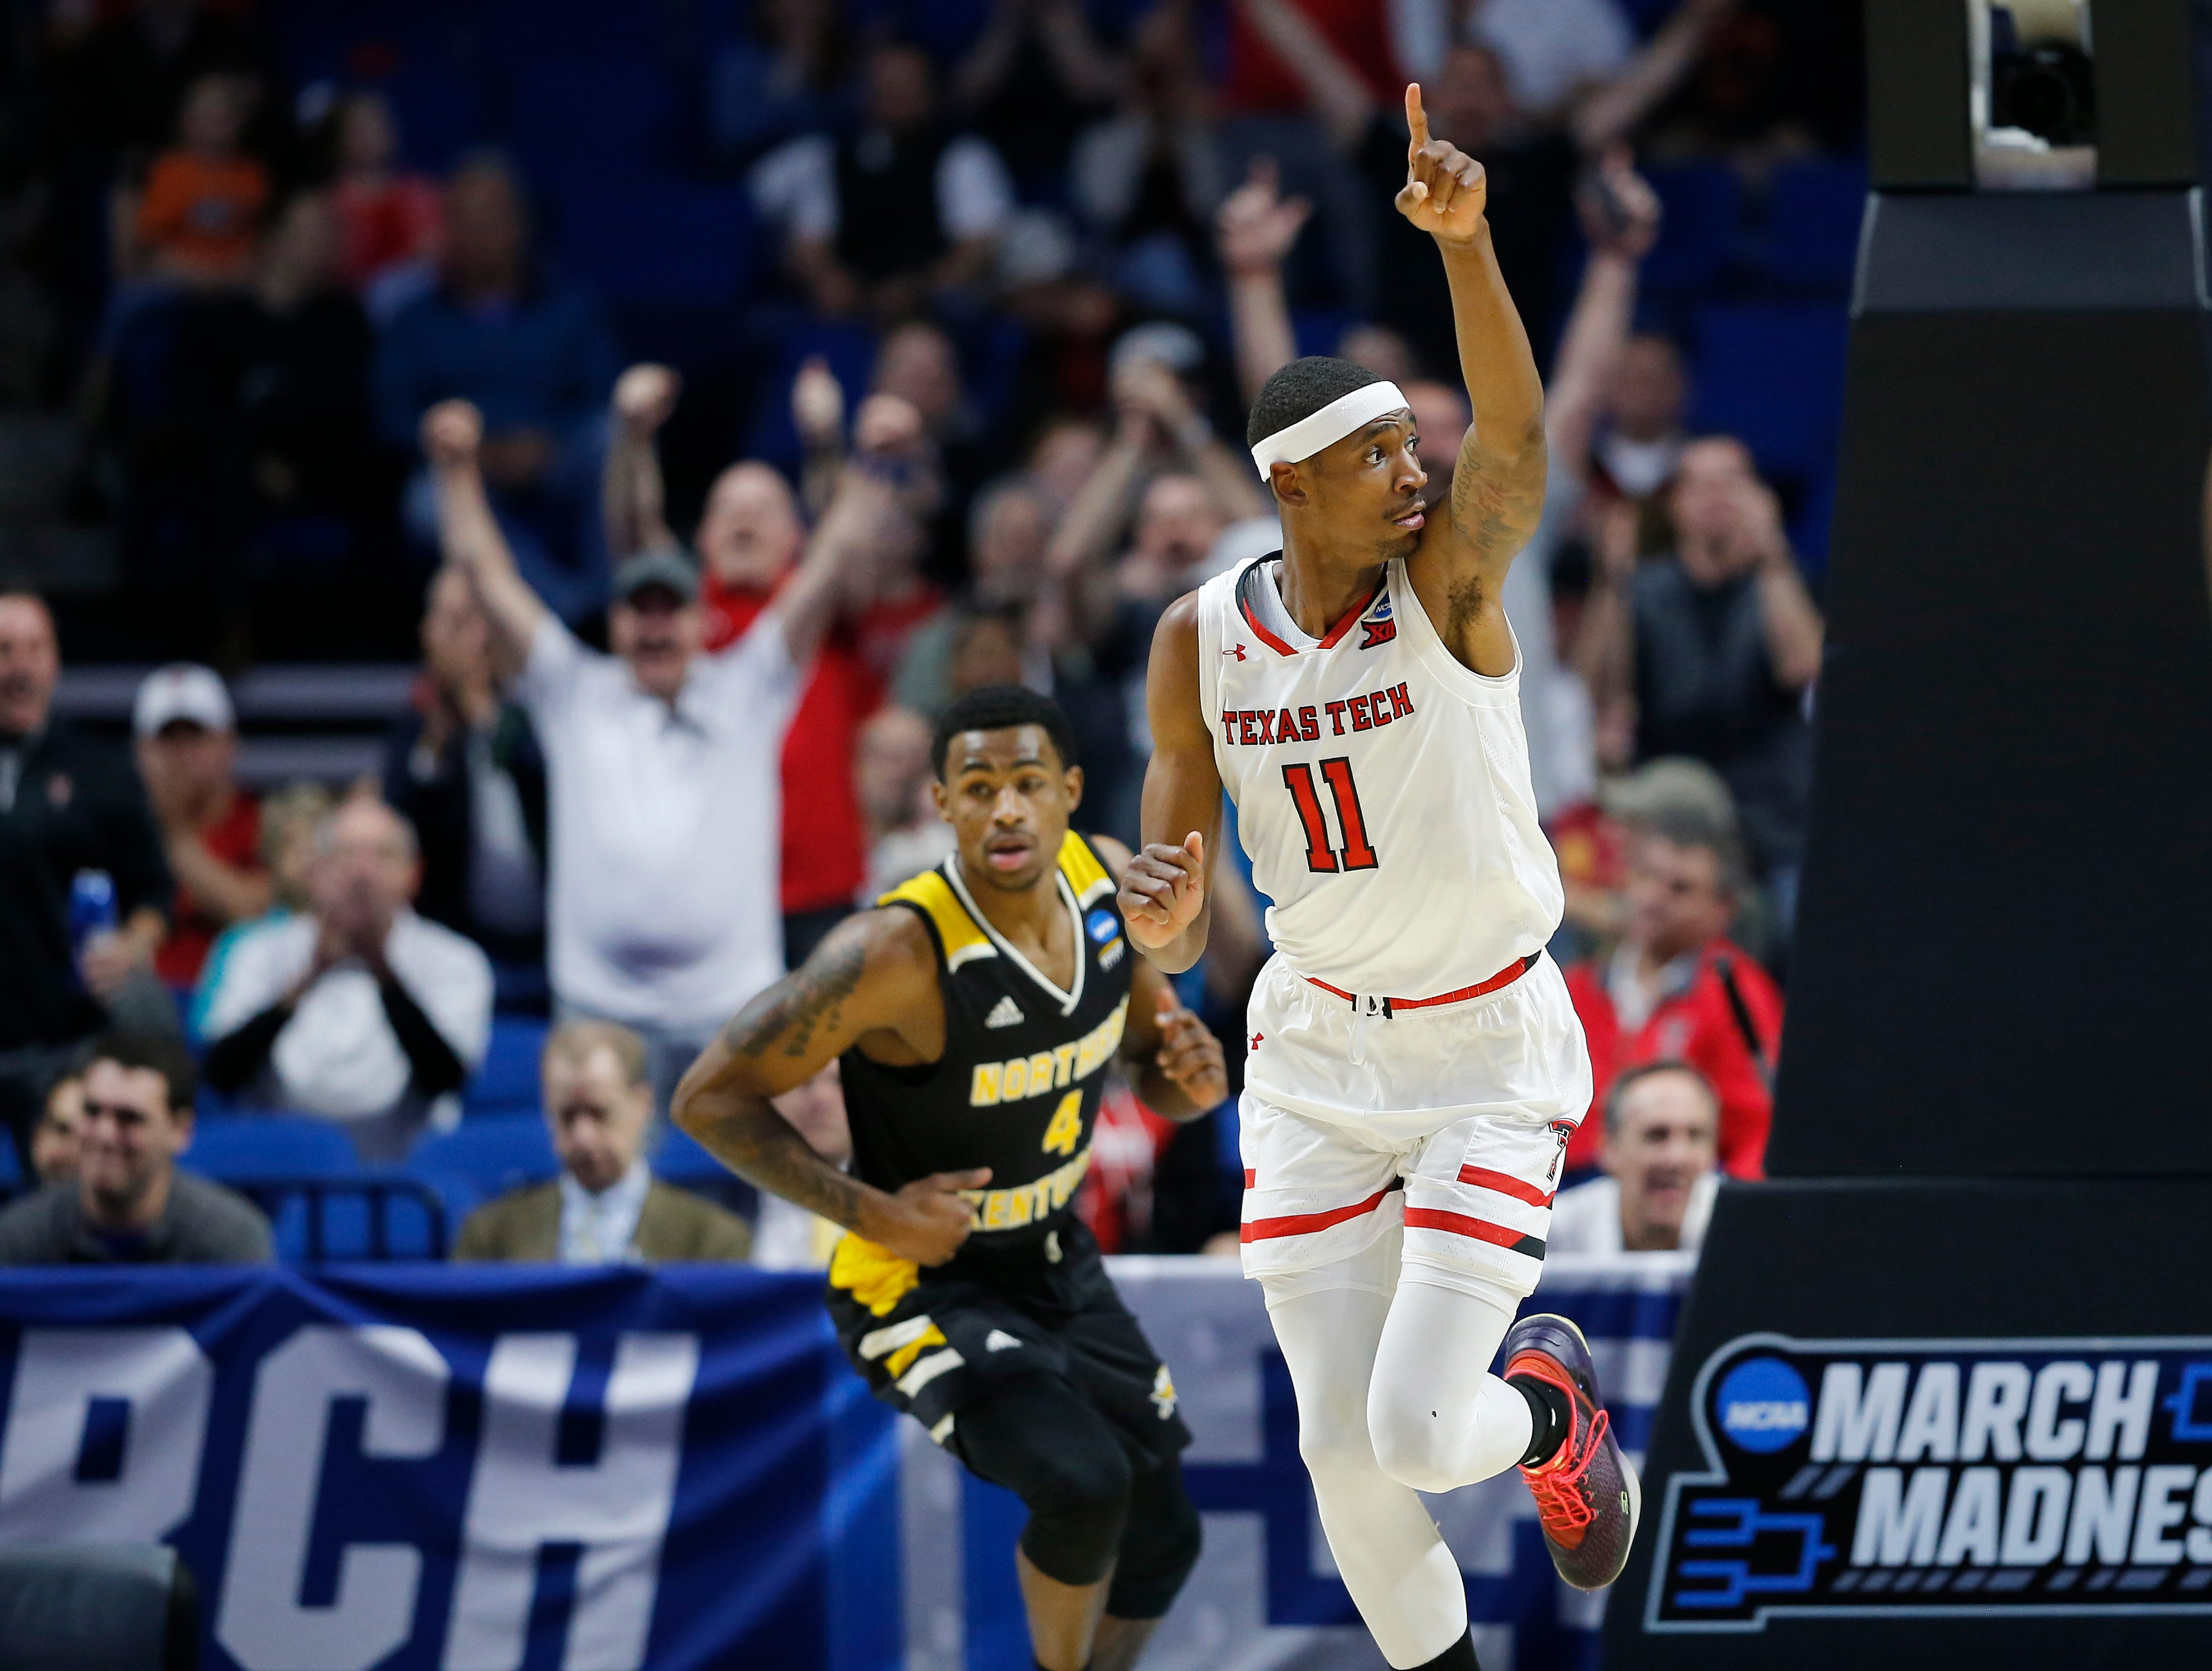 Texas Tech Red Raiders forward Tariq Owens (11) celebrates after a dunk in the first half of the NCAA Tournament First Round game between the 14-seeded Northern Kentucky Norse and the 3-seeded Texas Tech Red Raiders the BOK Center in downtown Tulsa on Friday, March 22, 2019. Texas Tech led 30-26 at halftime.